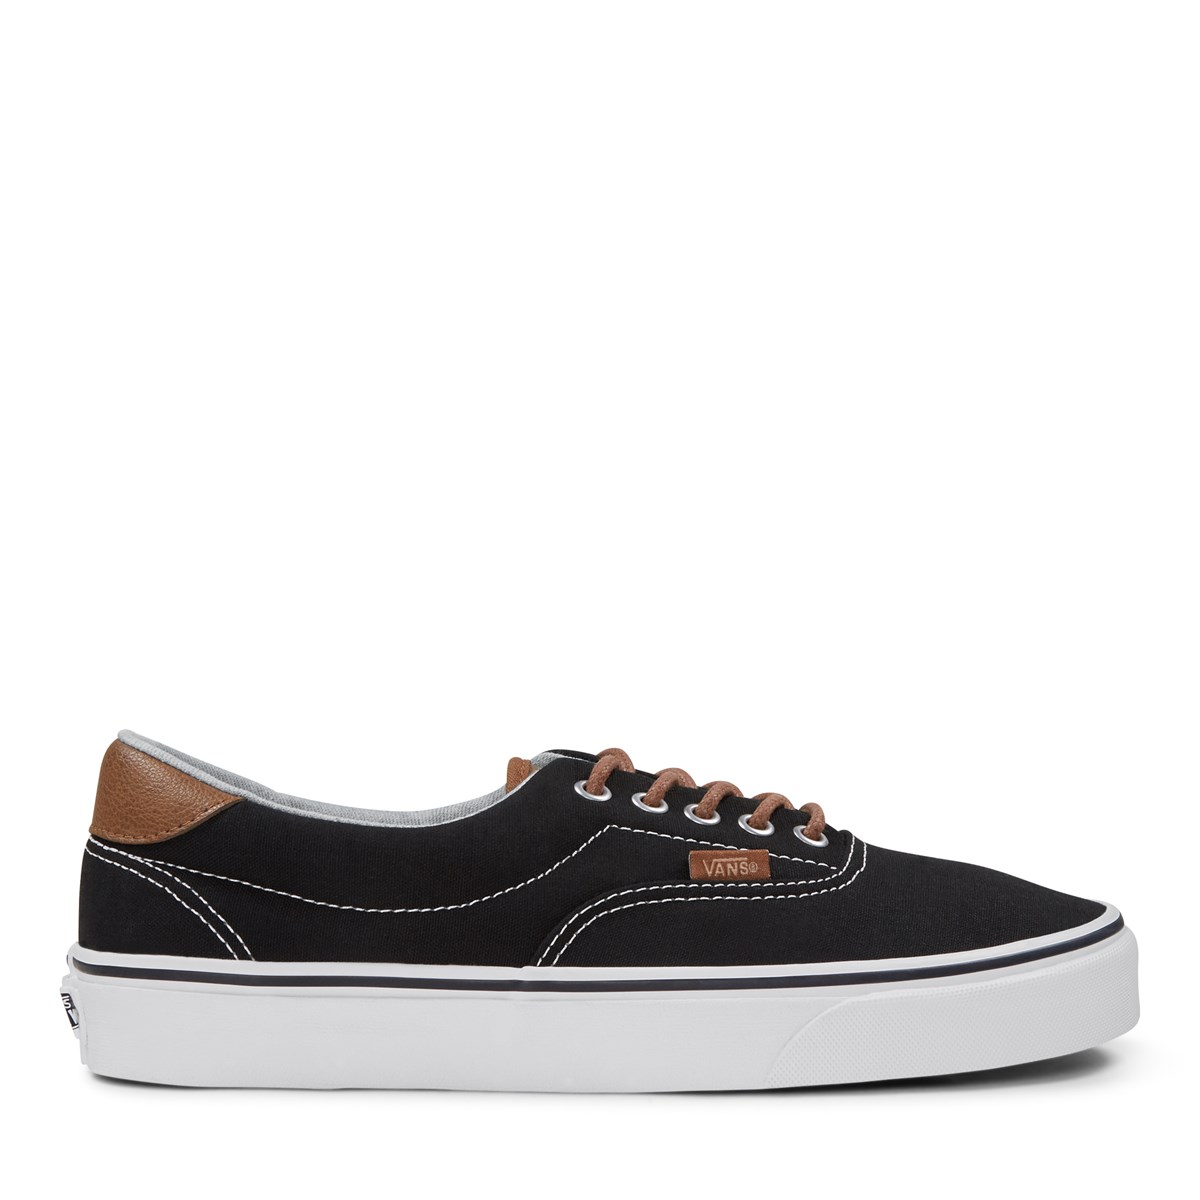 Men's C&L Era 59 Sneakers in Black